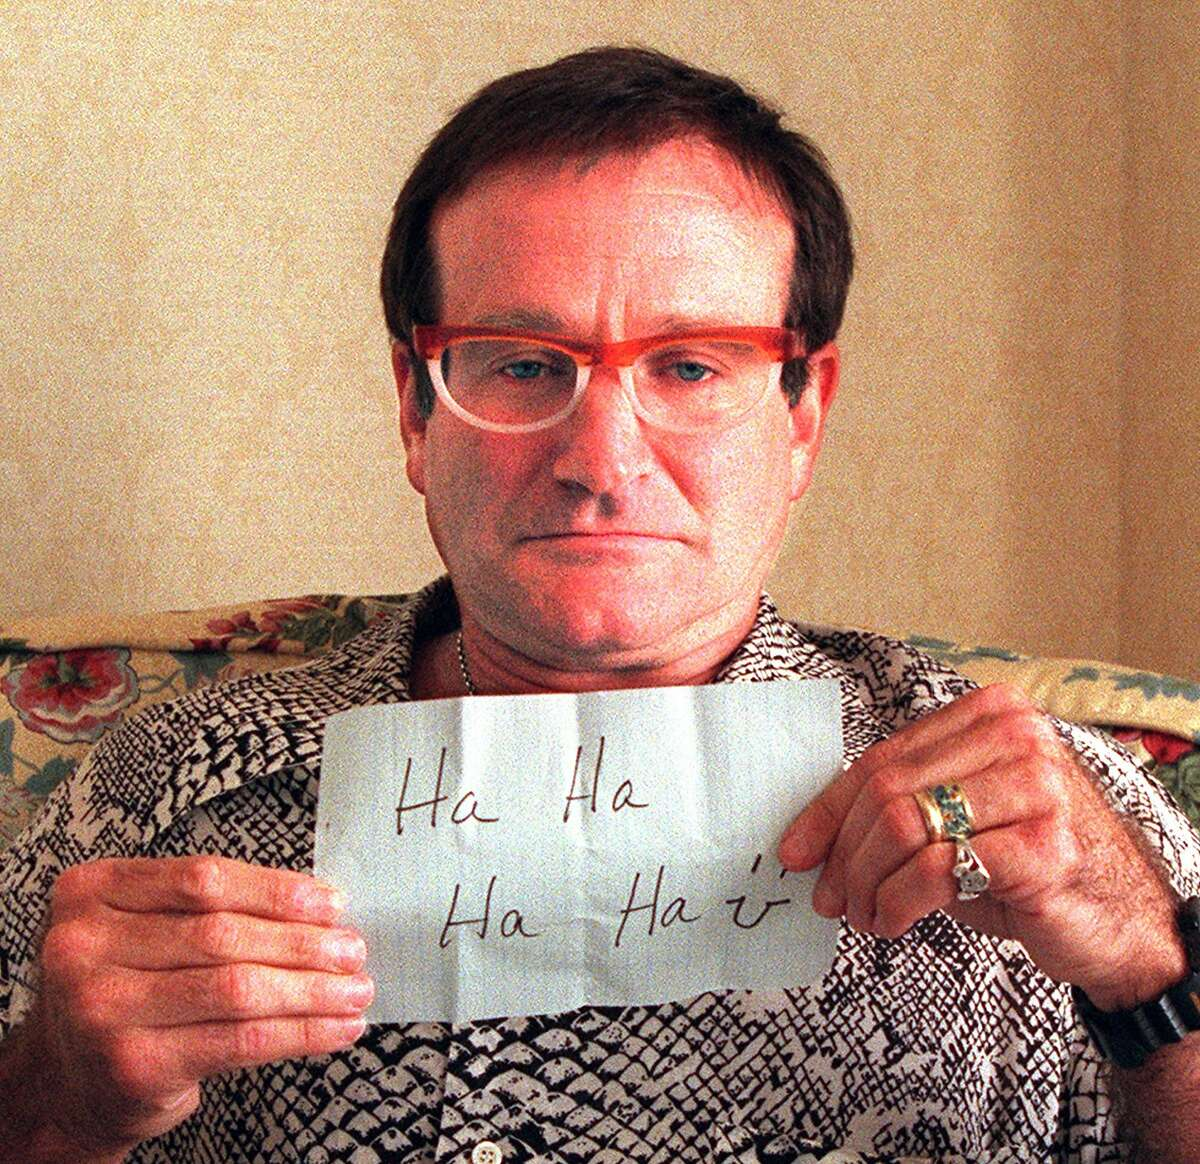 While actor and comedian Robin Williams' was open about his long-term battle with alcoholism and cocaine addiction, he was less public about his mental health issues. His publicist said Williams suffered from severedepression.